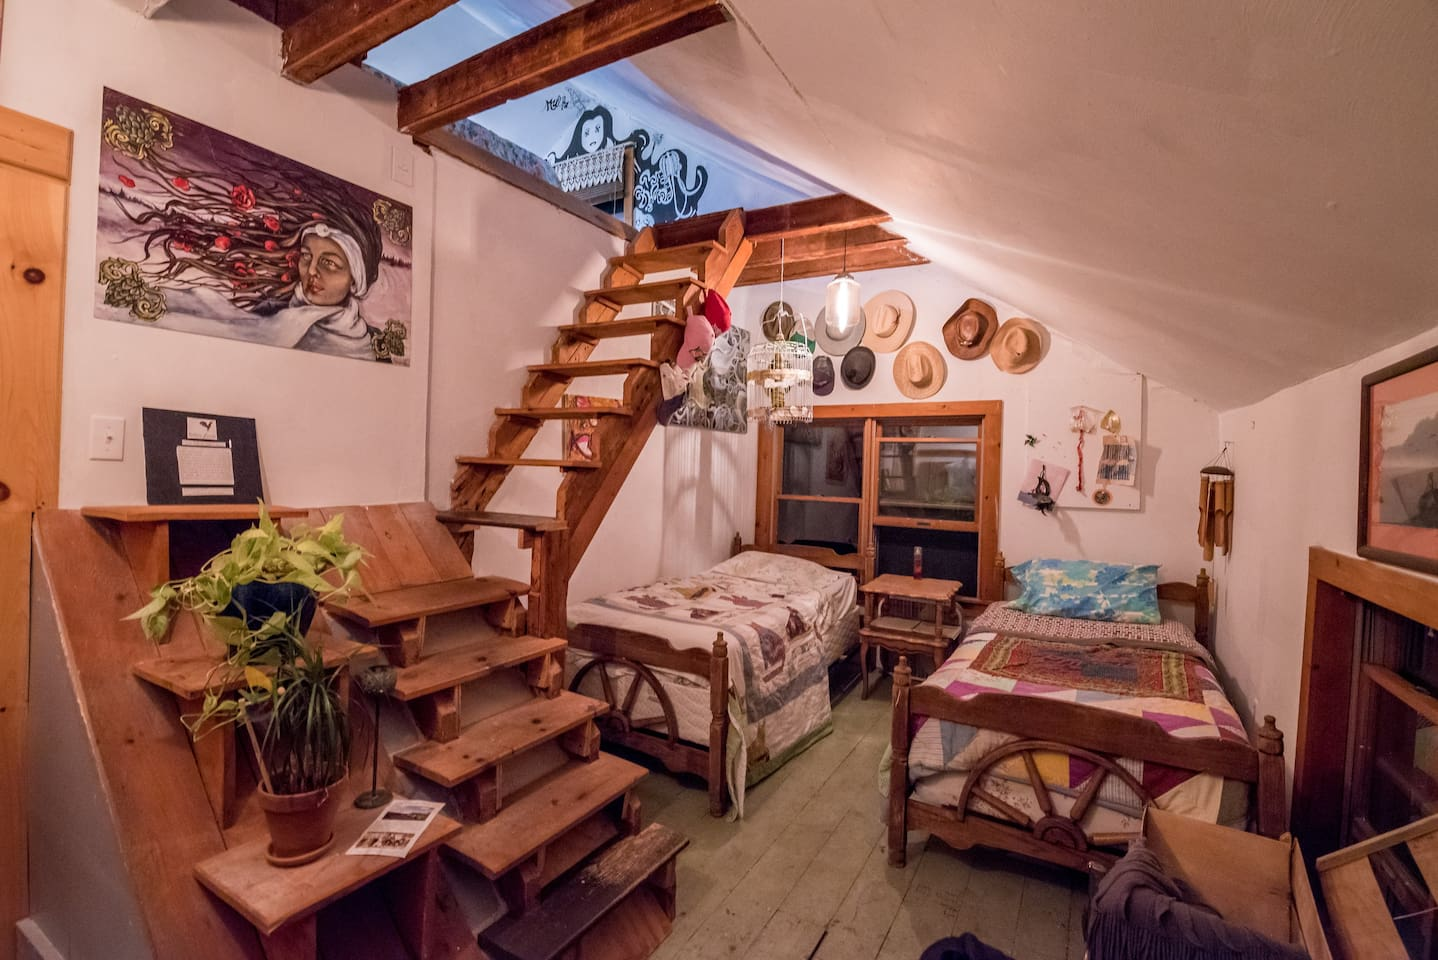 The loft bedroom has two single beds on the first floor, and a full-size bed up stairs in the open-floor layout.